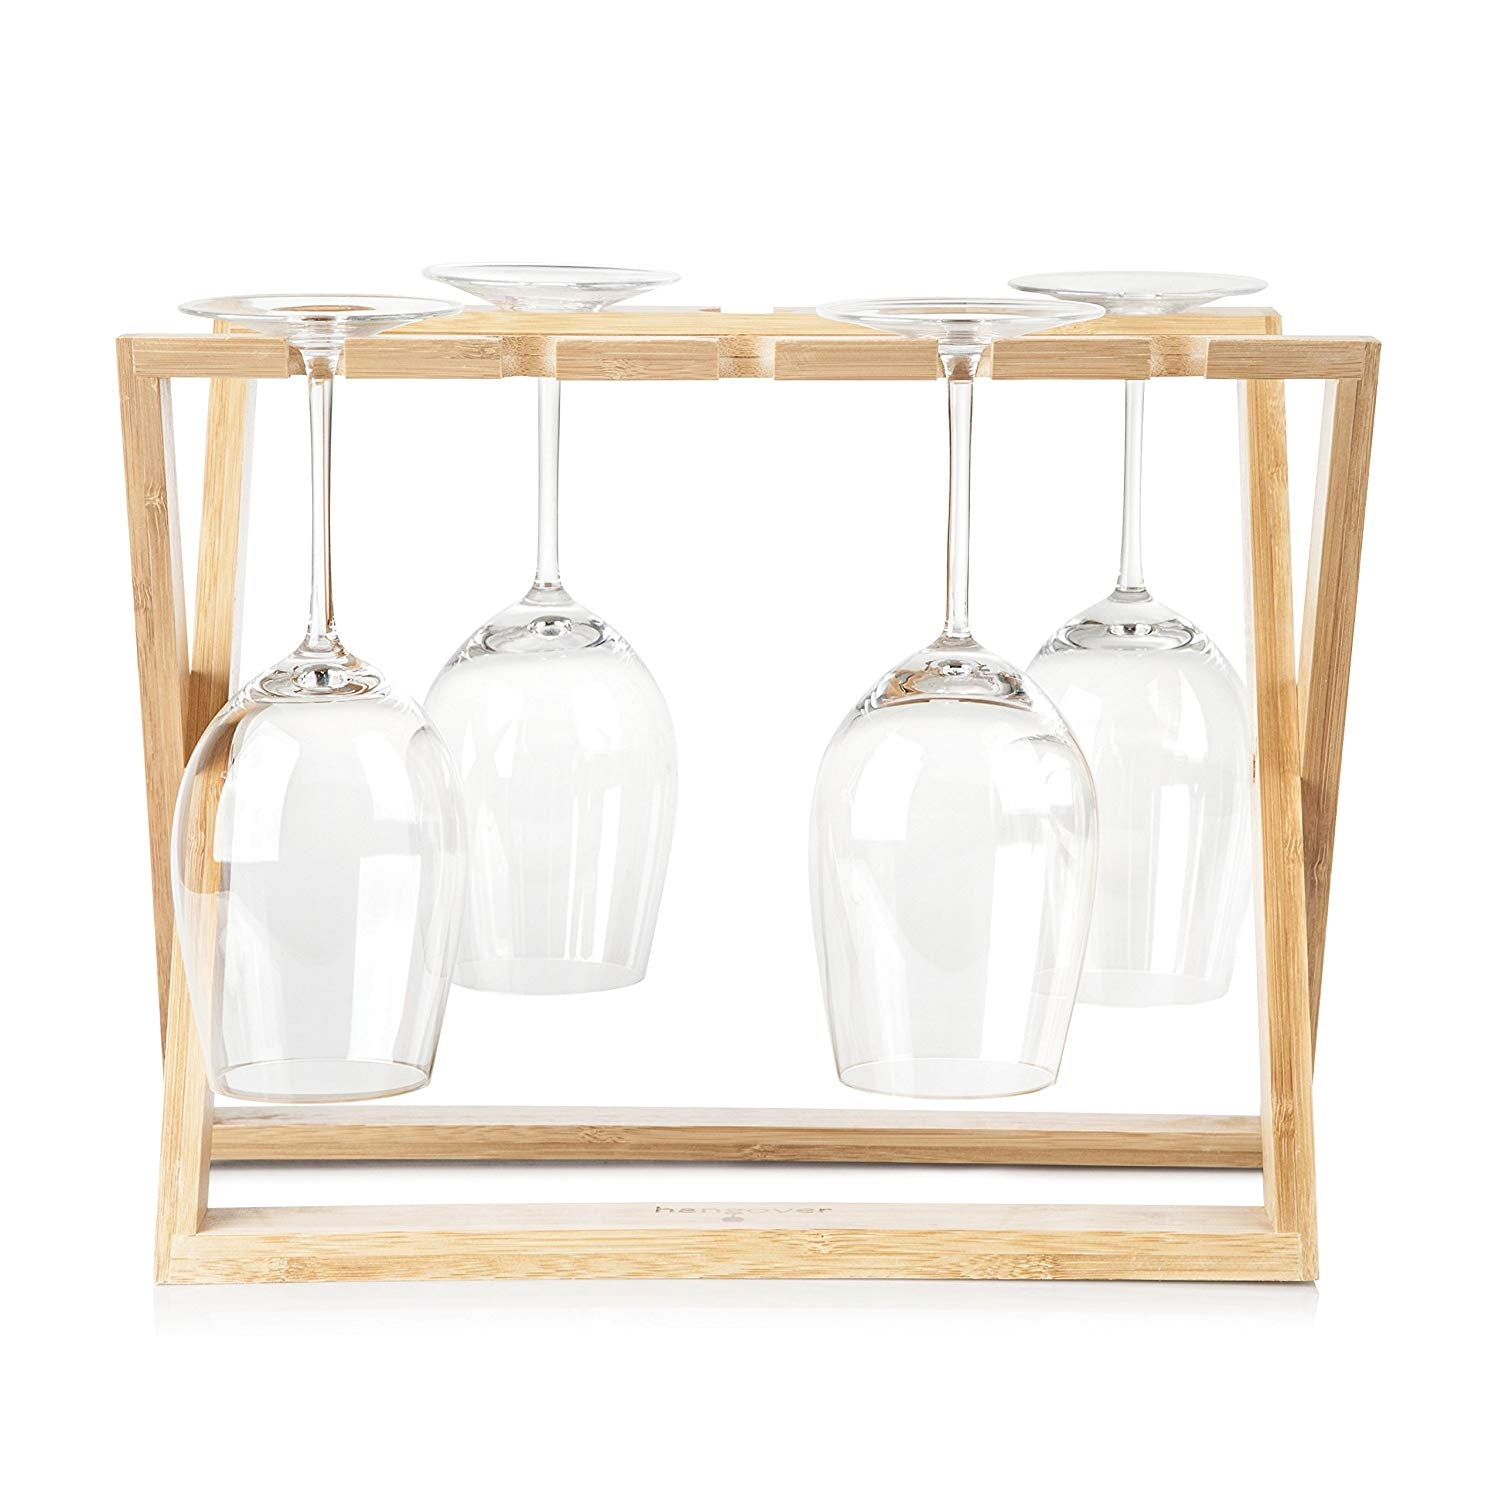 Bamboo Wine Glass Holder Rack: Hangover Foldable Stemware kitchen Organizer to Hold 6 Wine Glasses of Various Sizes, Countertop or Tabletop wood Storage, Display and Drying of Stemmed Wine Glasses